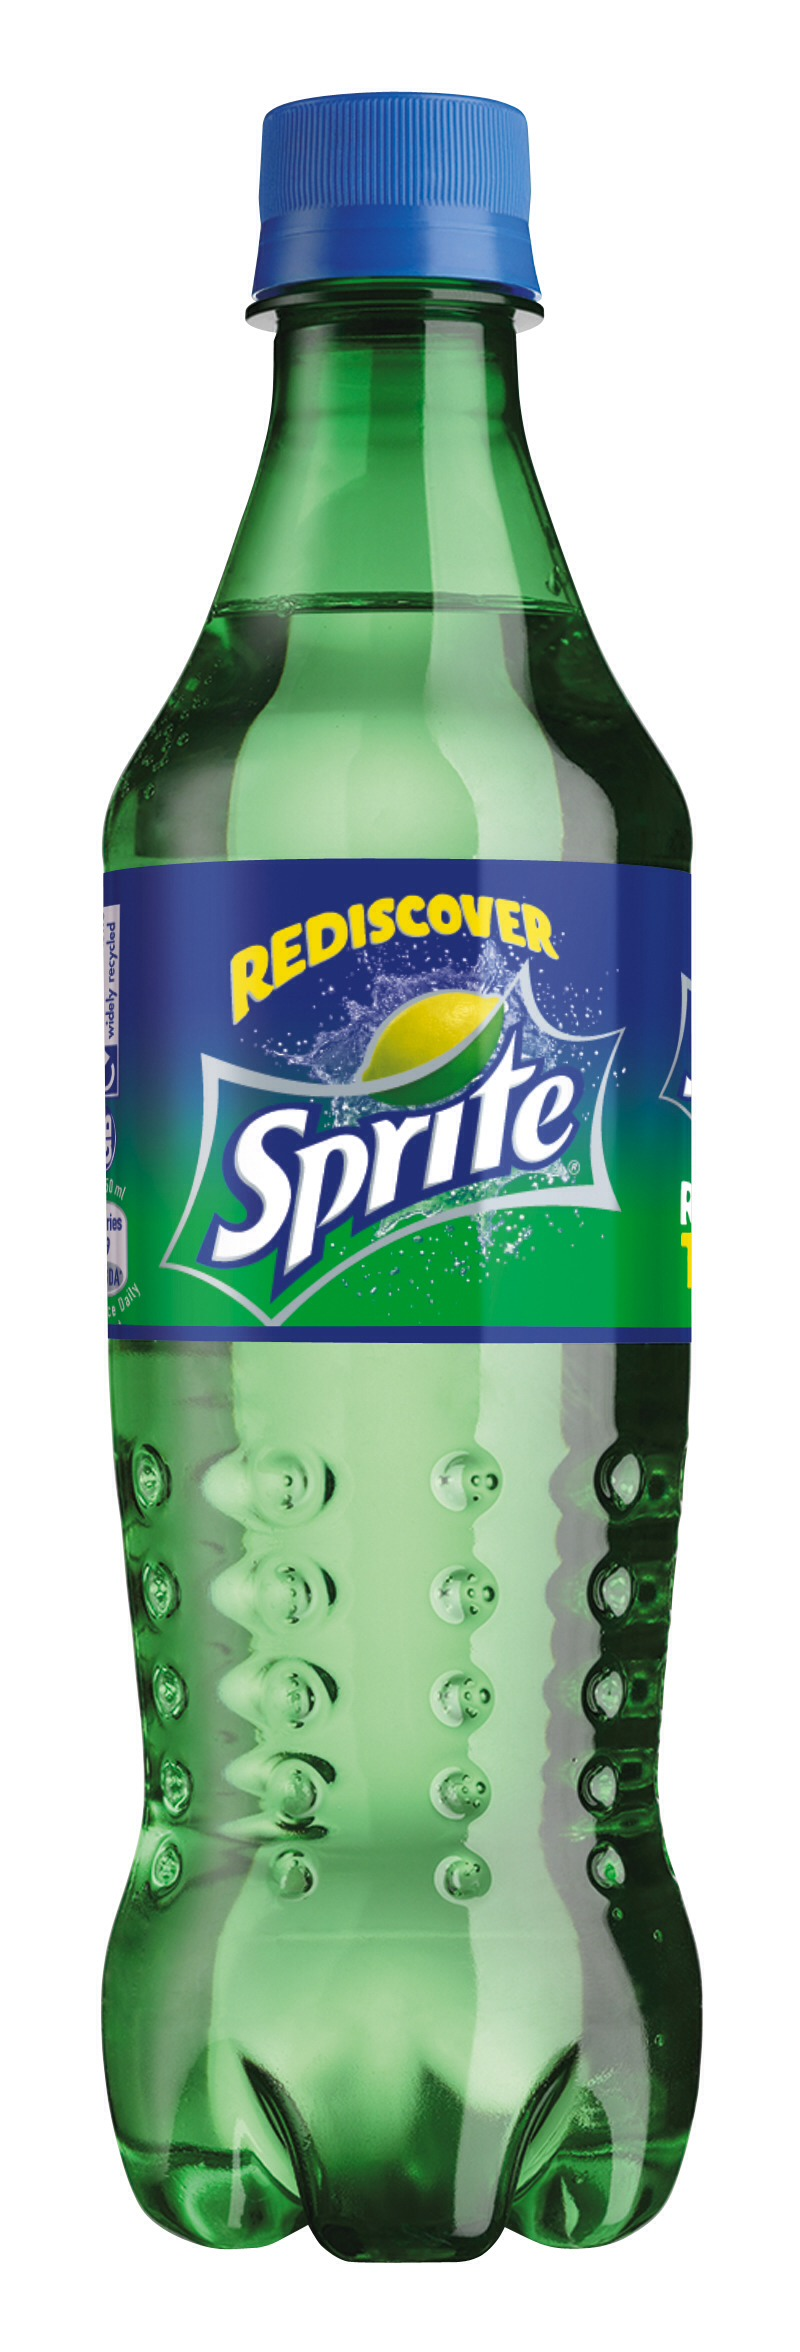 Scientists claim that the miracle cure for a hangover is sprite.